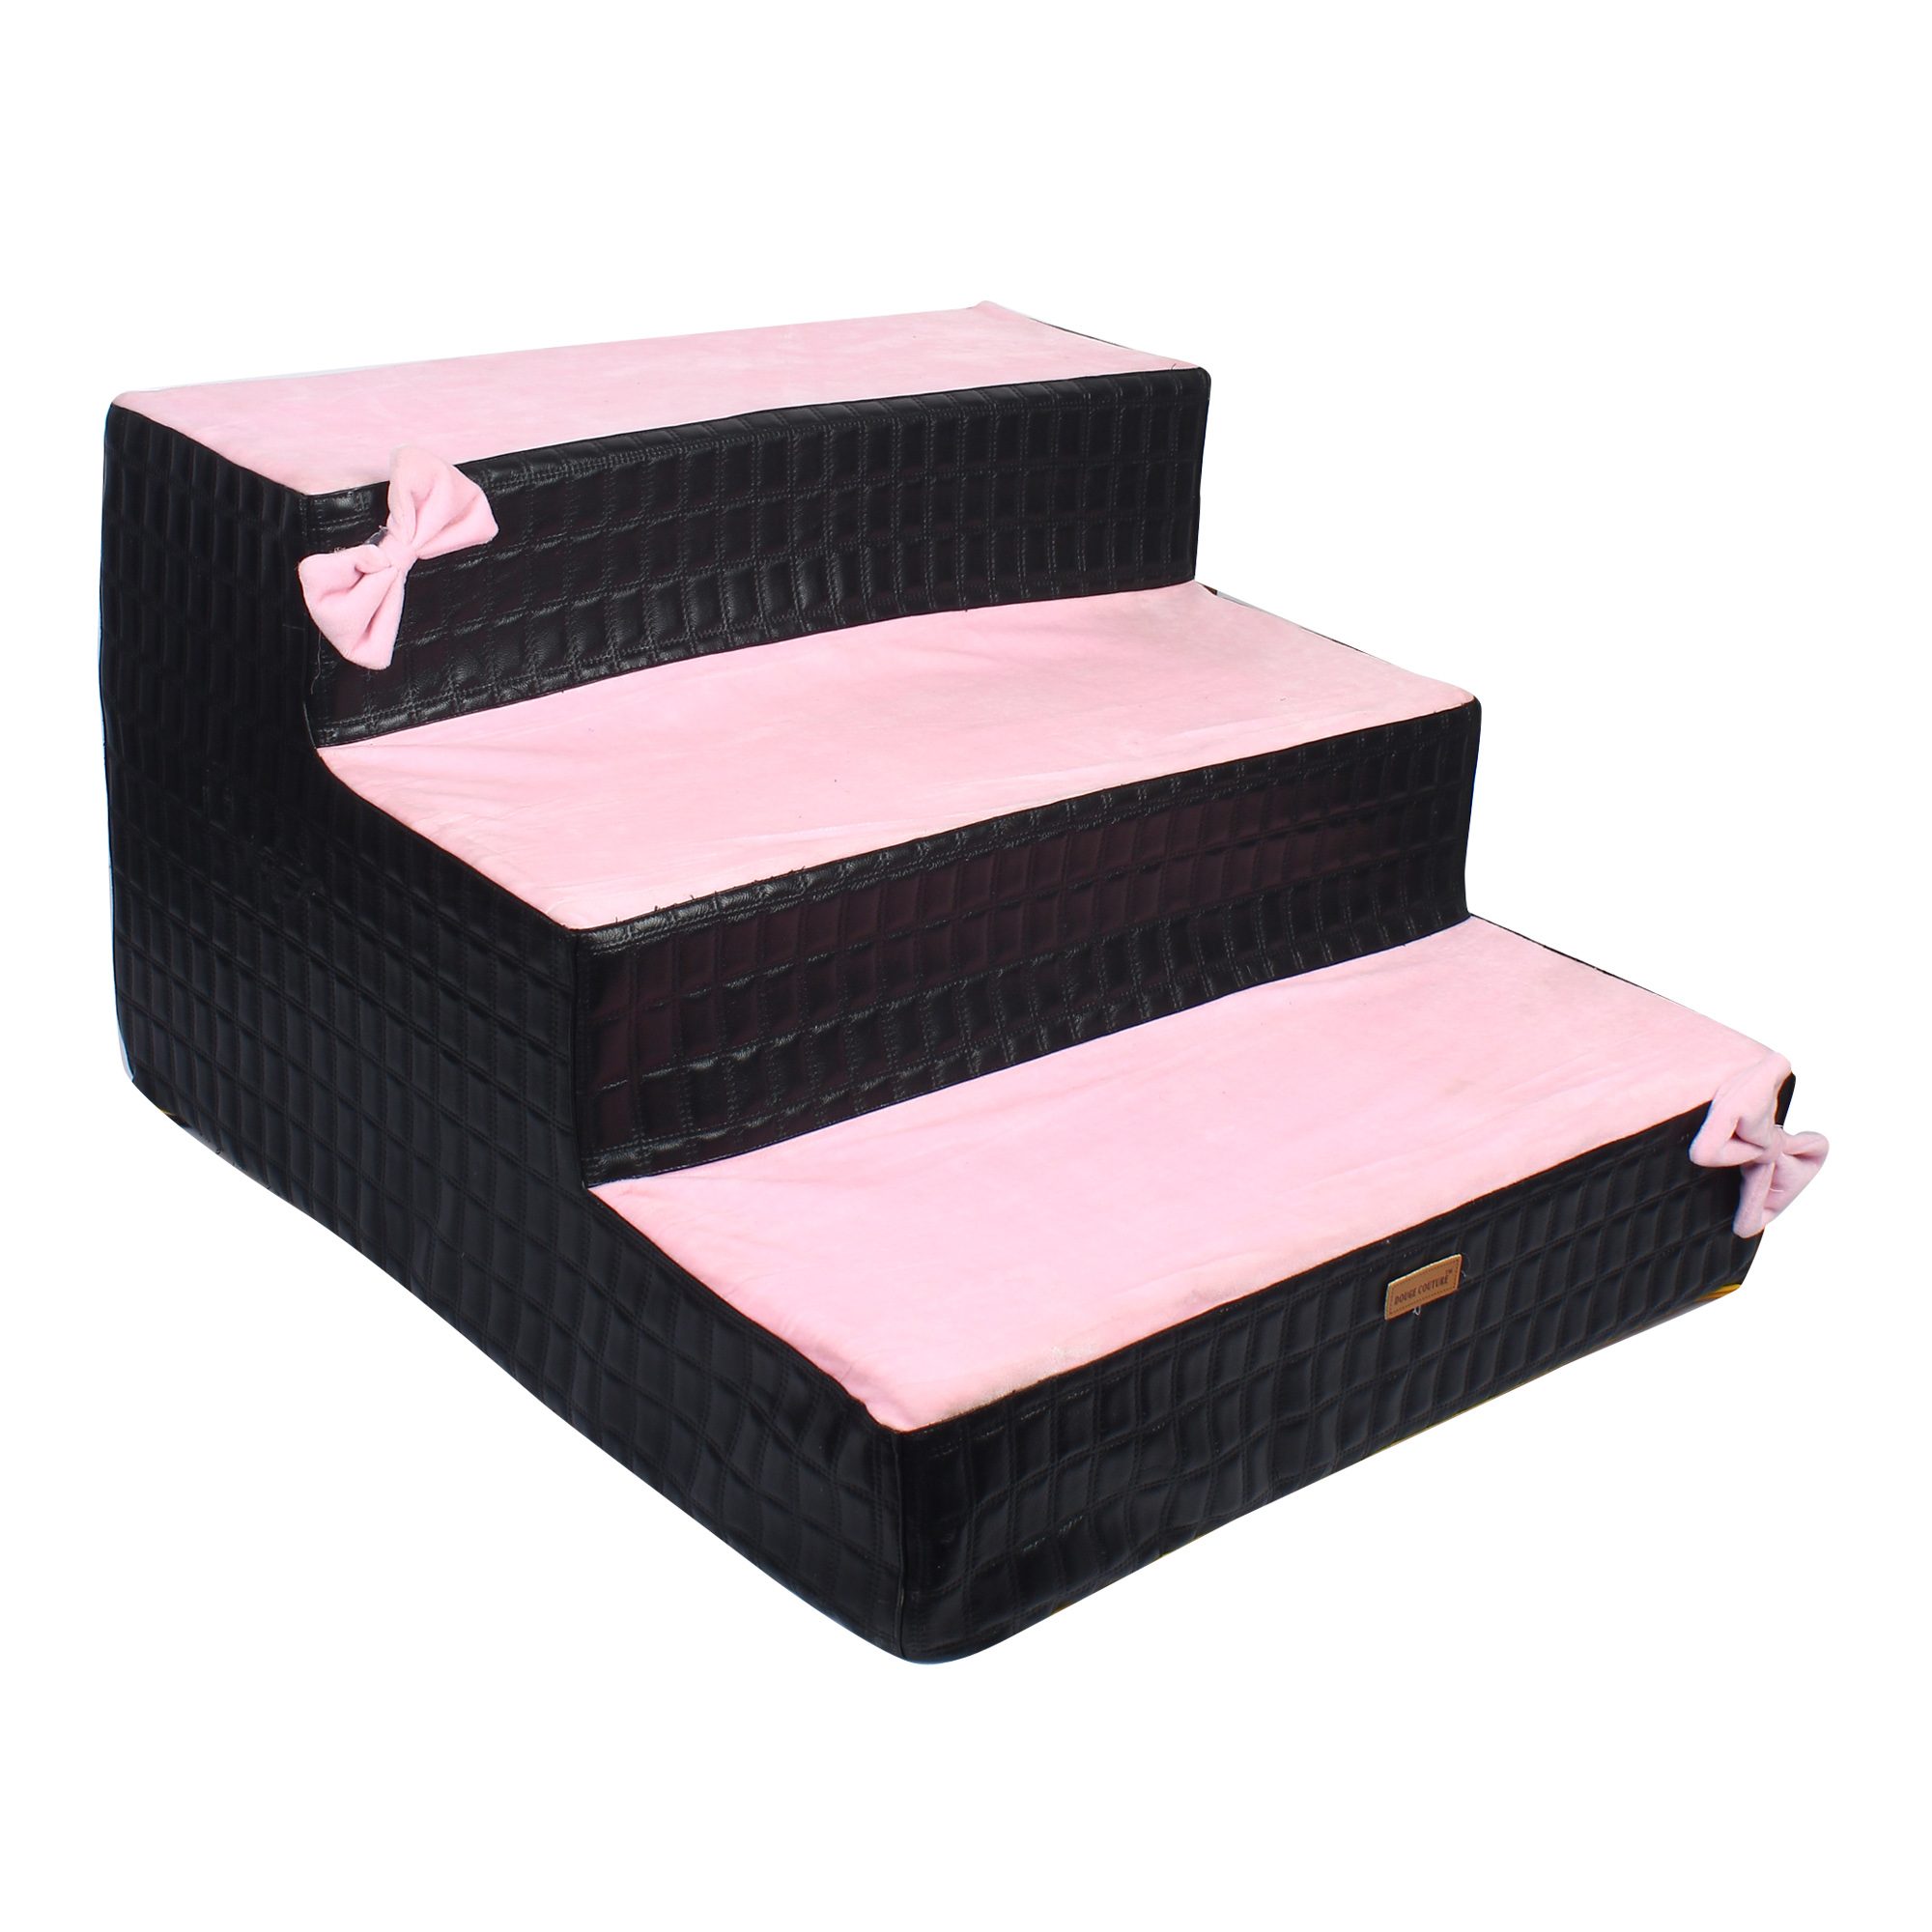 Douge Couture dog/cat stairs/ladder3 Steps Ramp Ladder black& pink